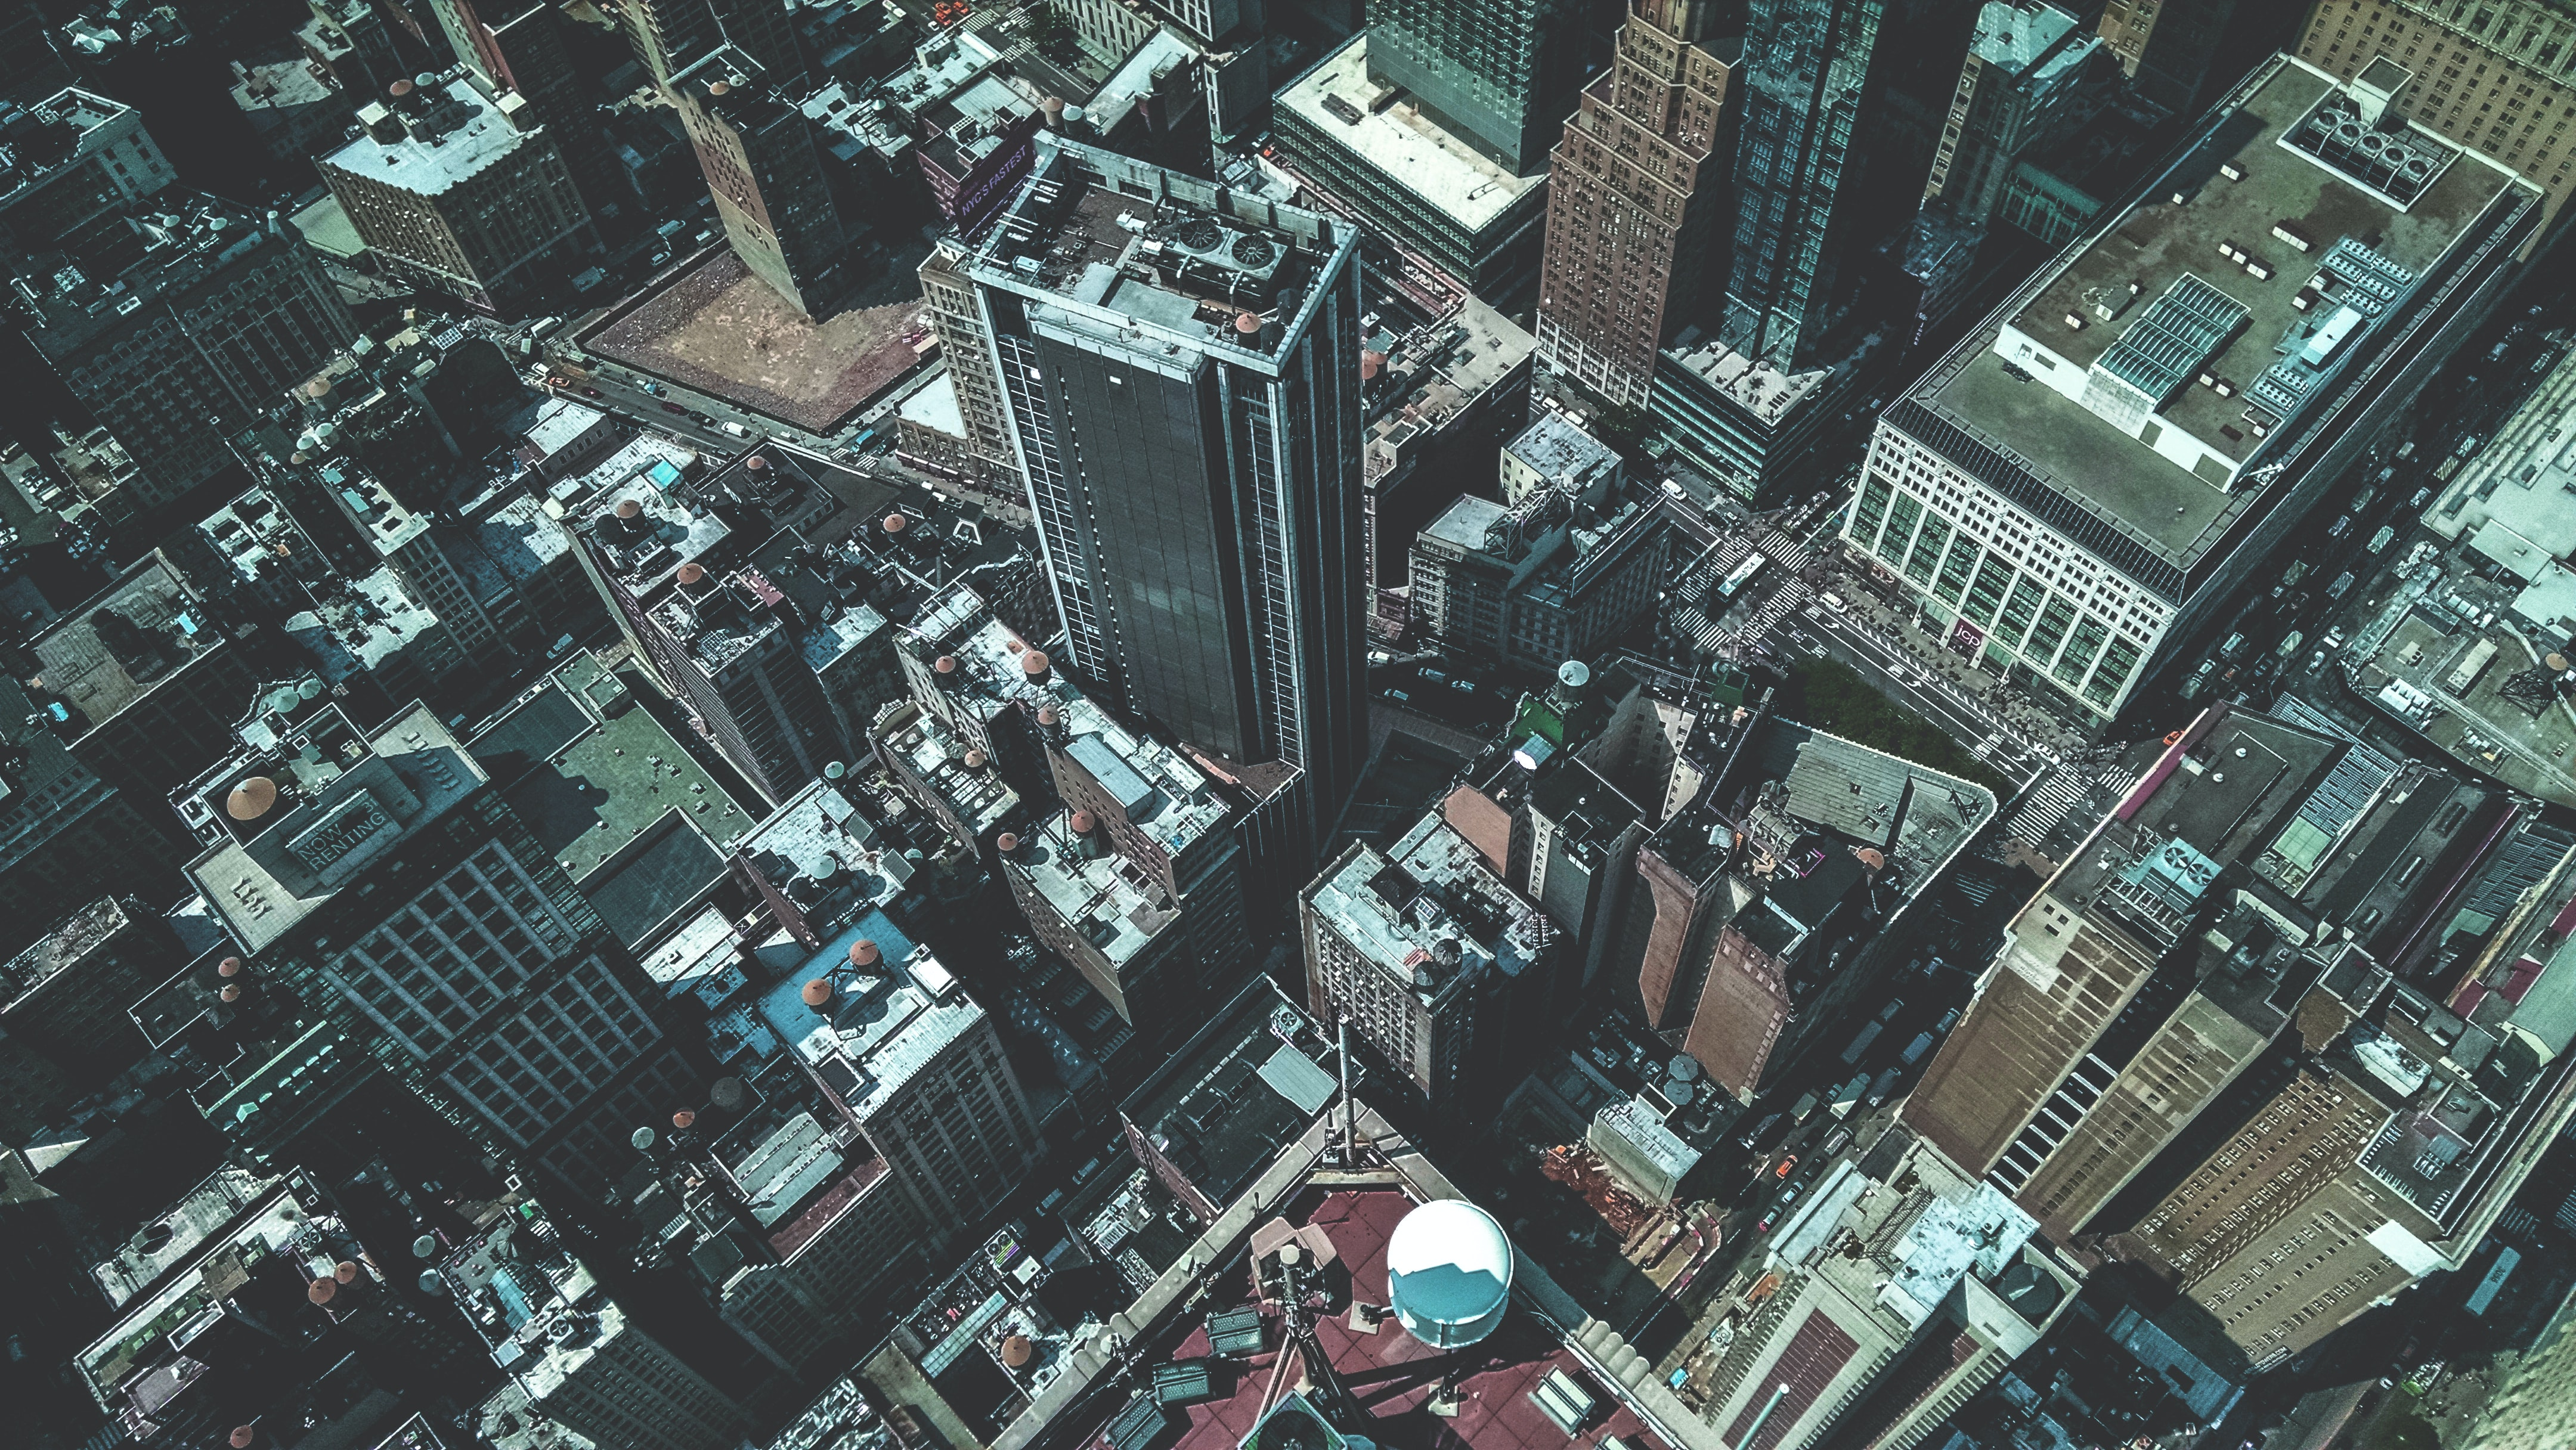 Drone view of the rooftops of skyscrapers and buildings in New York City